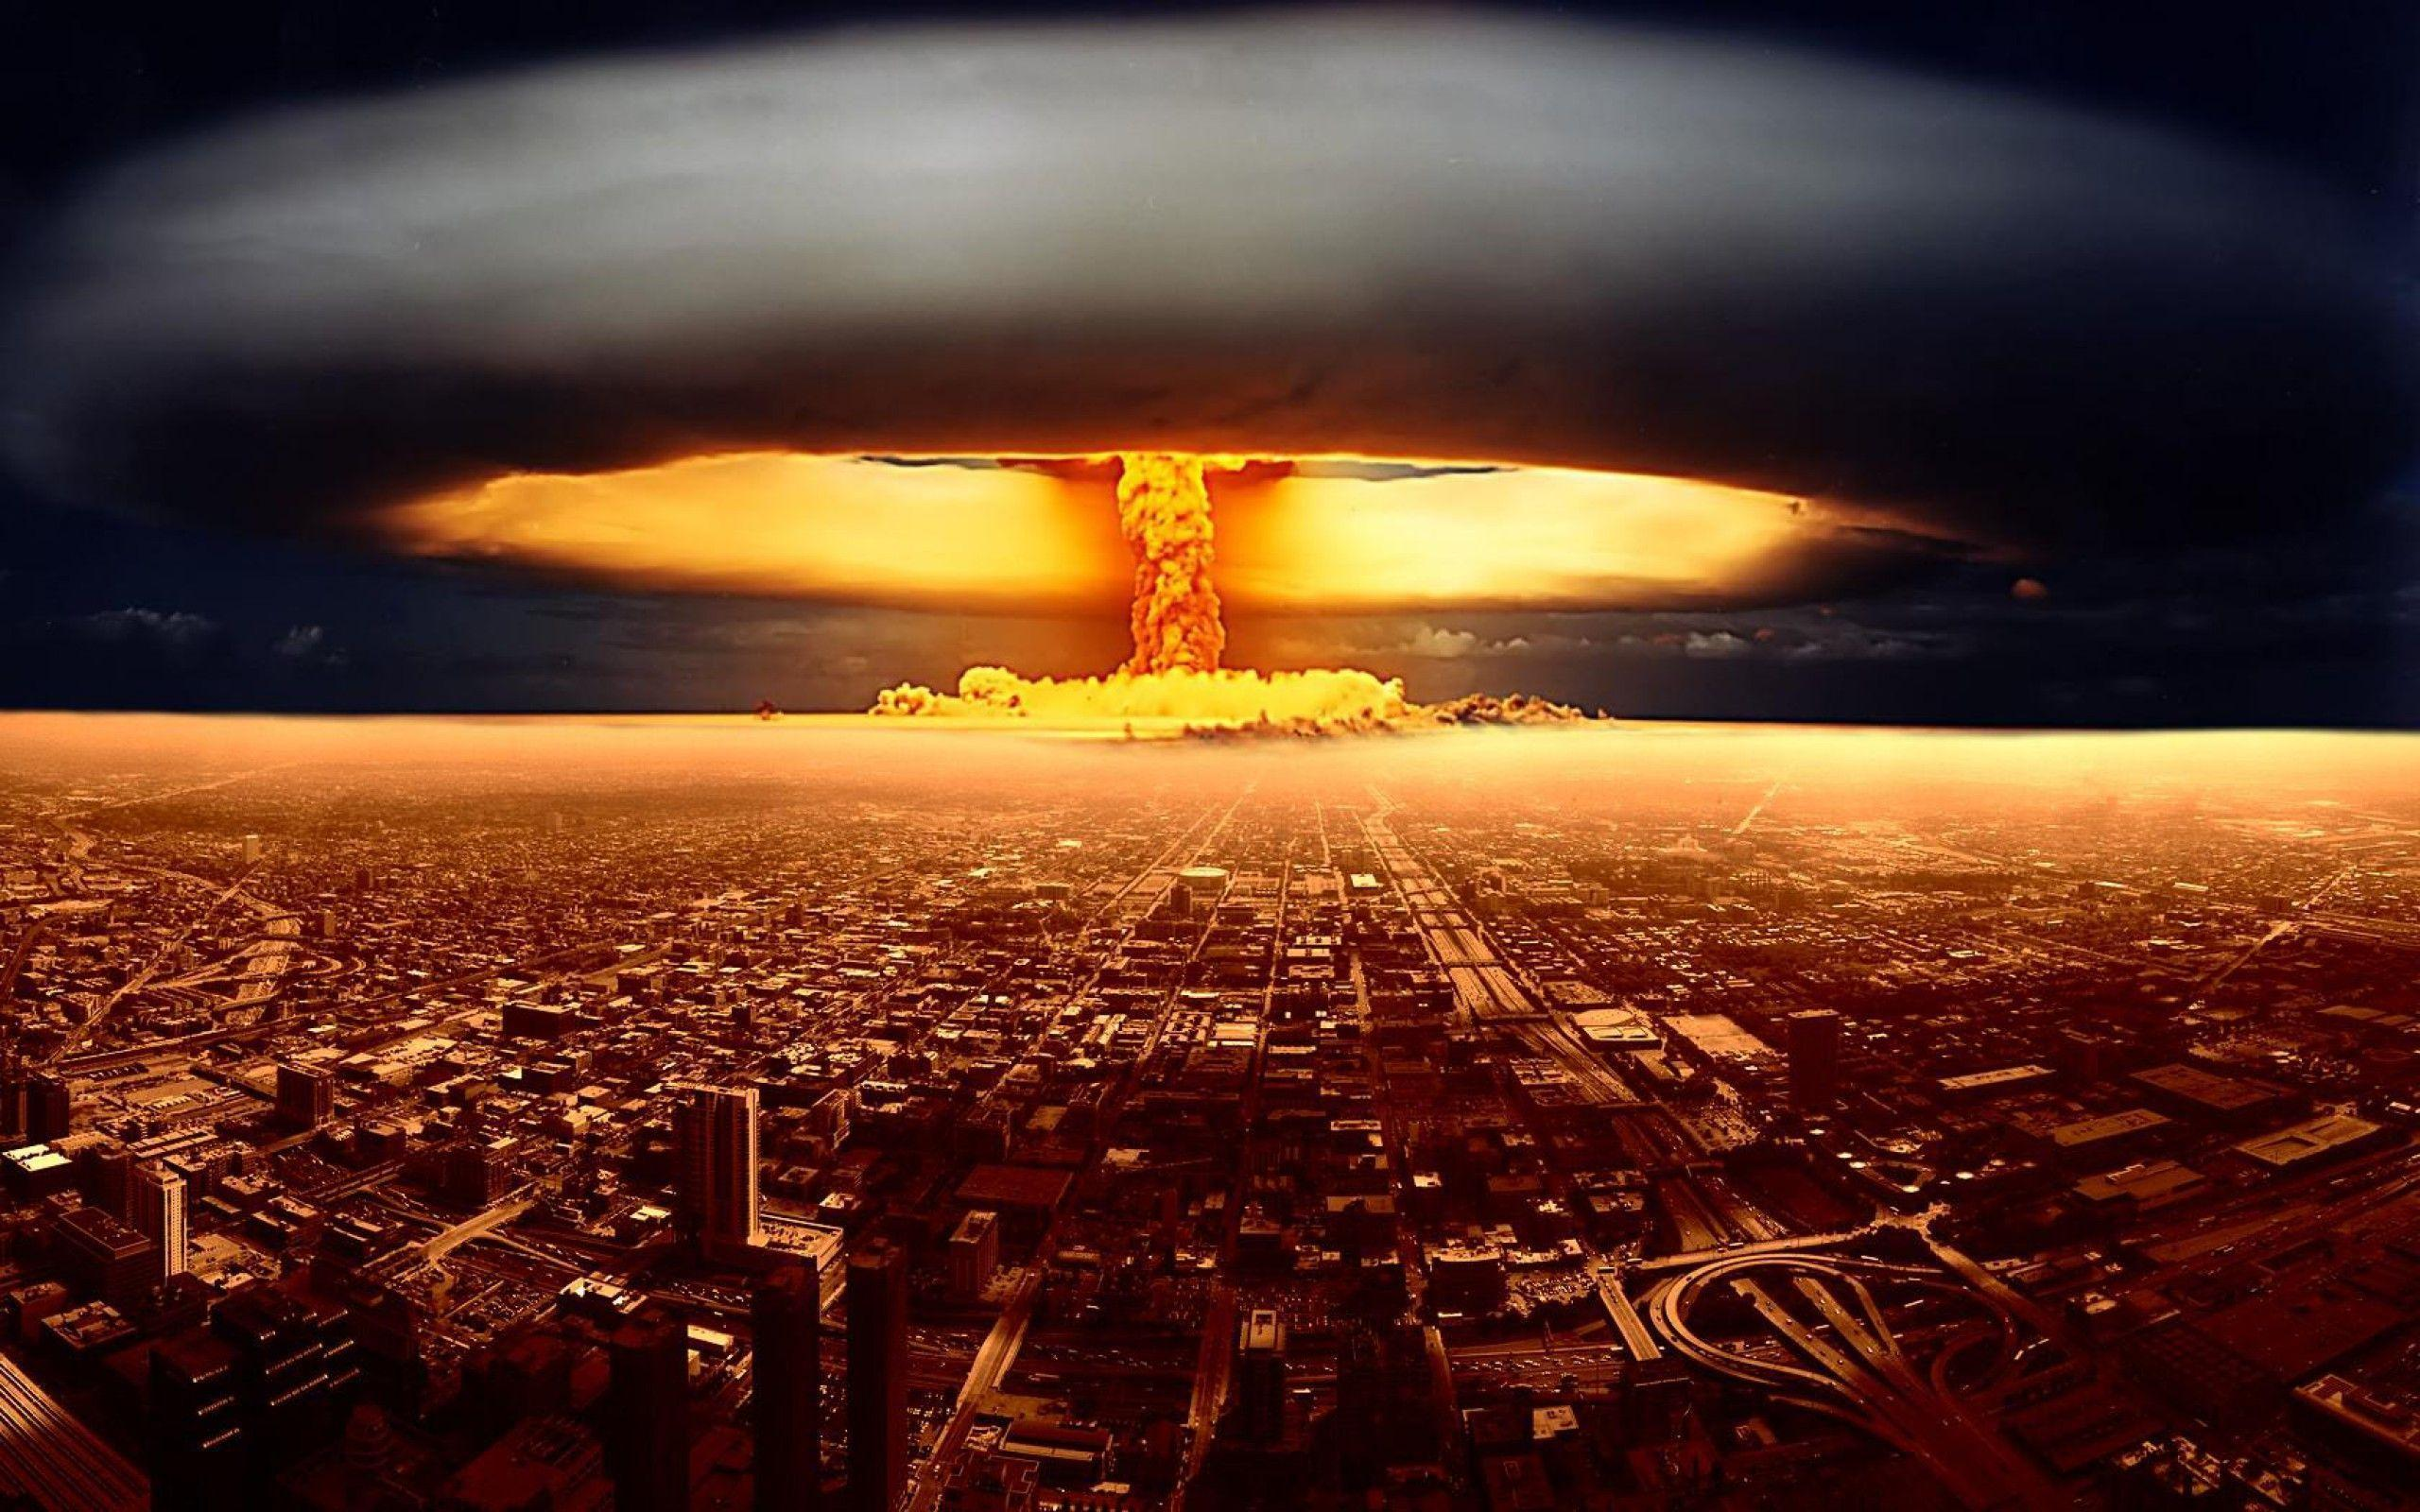 Wallpapers For > Nuclear Explosion Wallpaper Hd